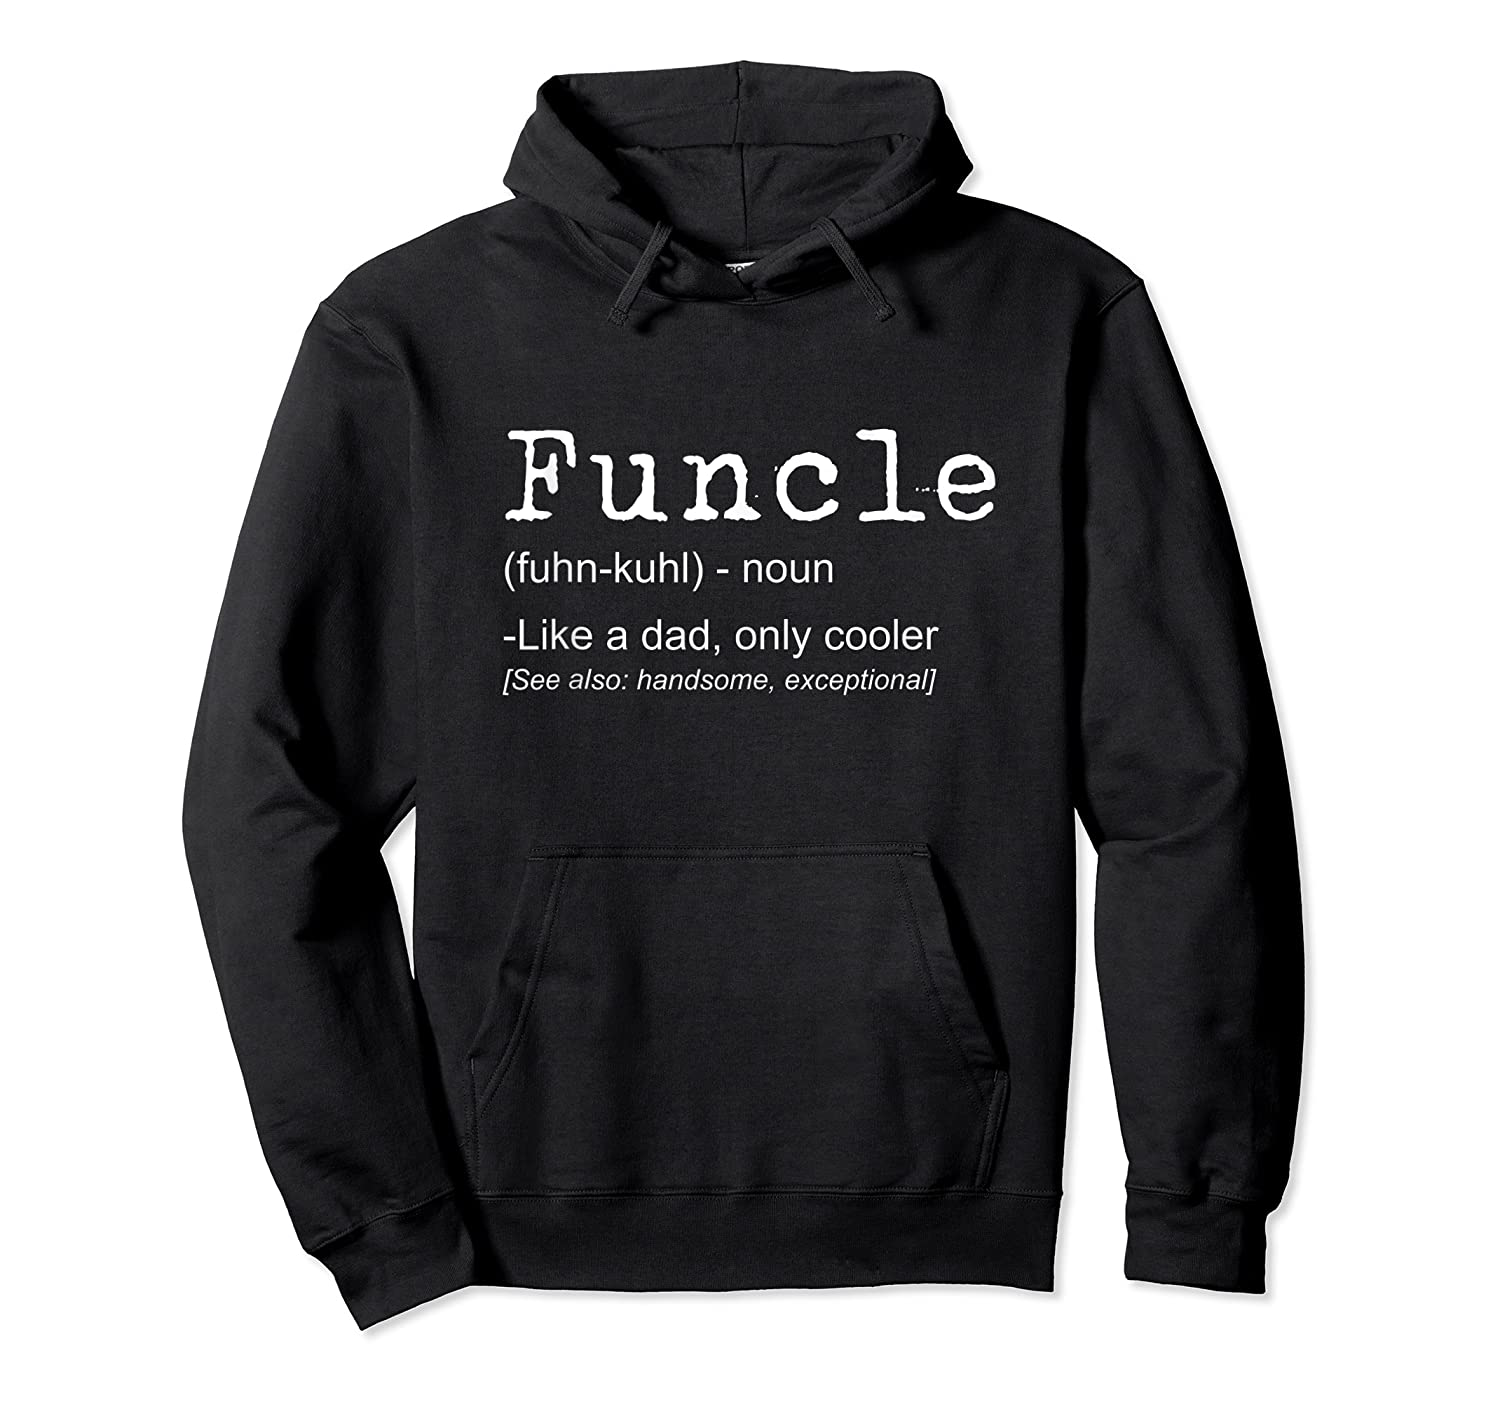 Funcle Definition Design Funny Joke Gift For Uncle Tank Top Shirts Unisex Pullover Hoodie